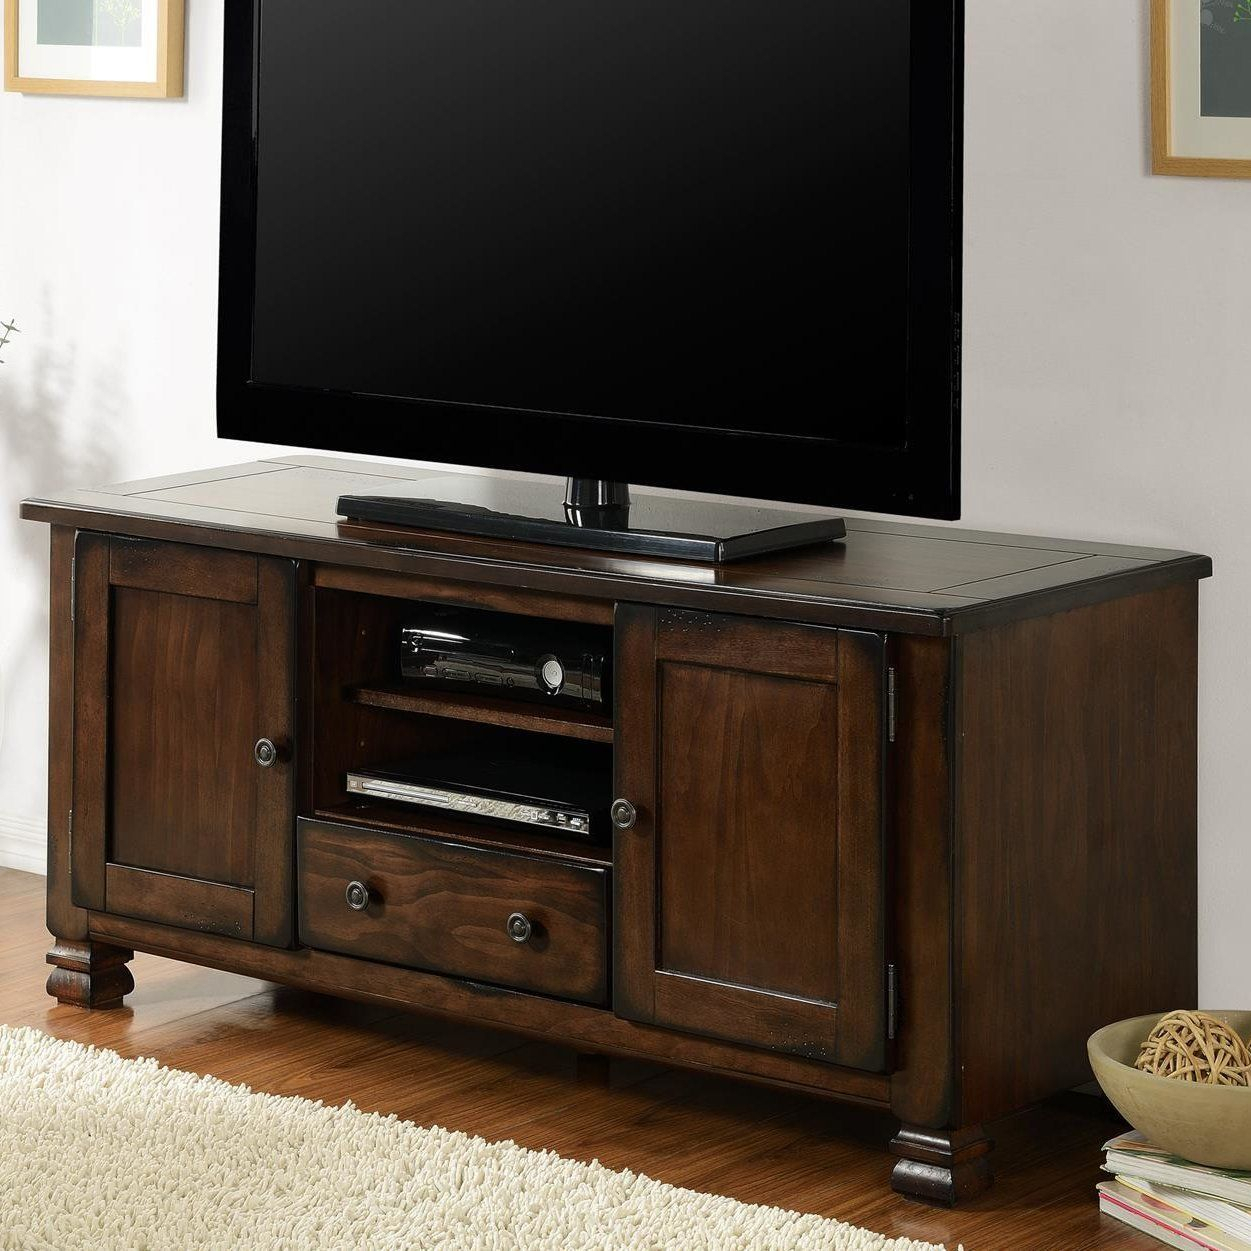 "Brackenridge 54"" Tv Stand #tvstandideasforlivingroom 